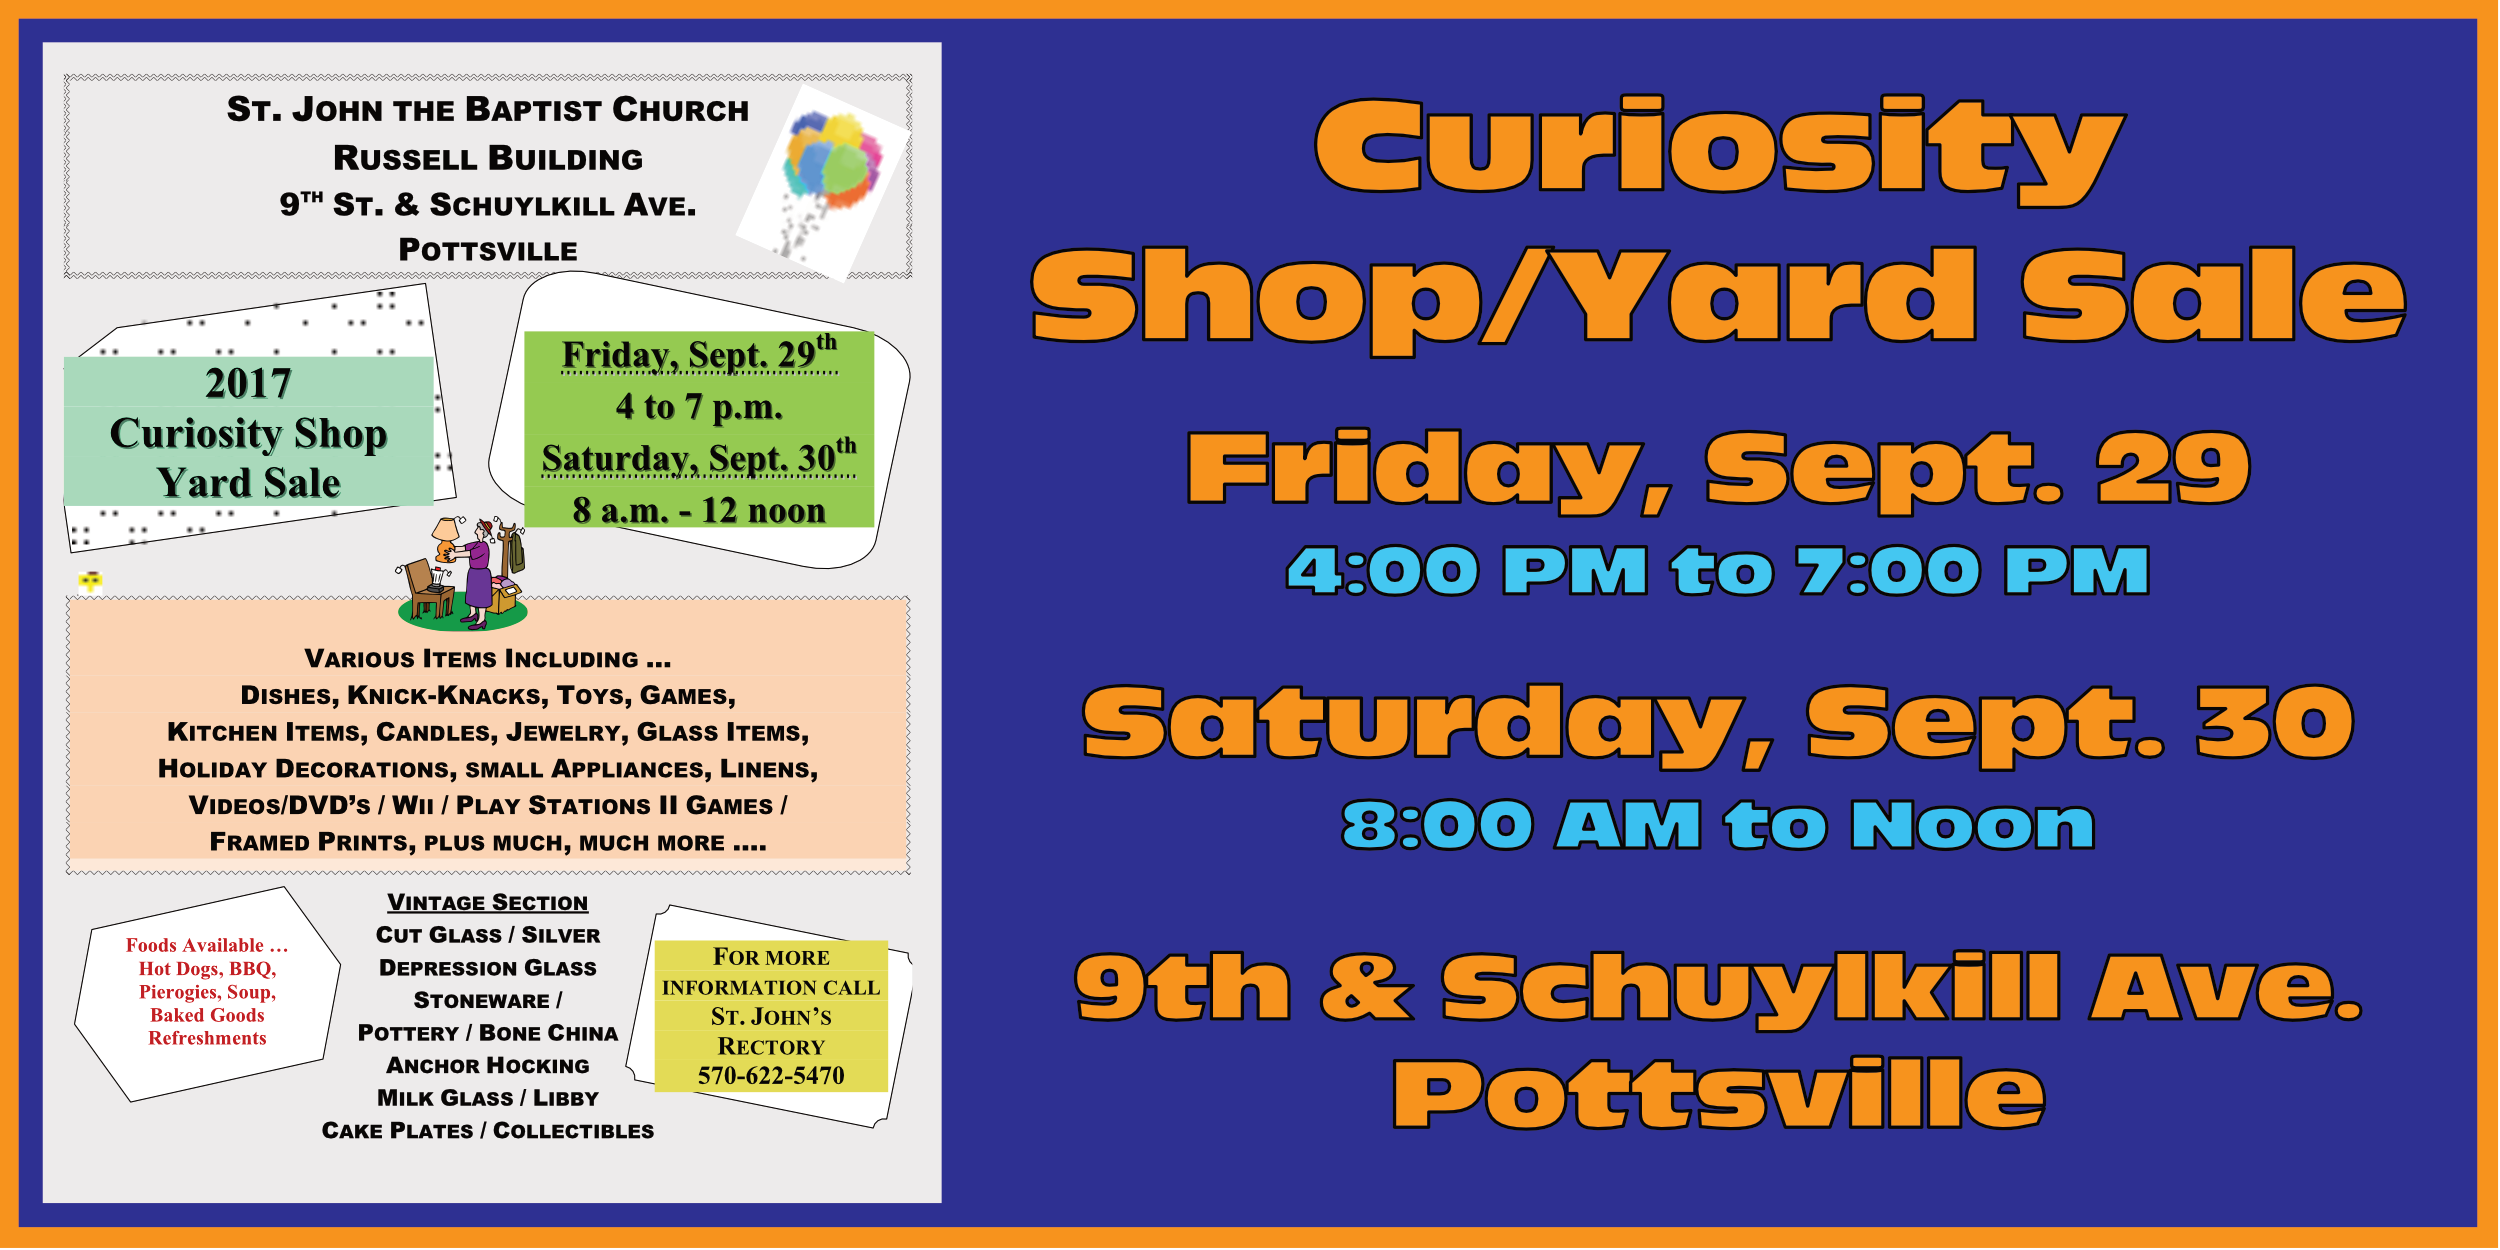 Curiosity Shop Web Site